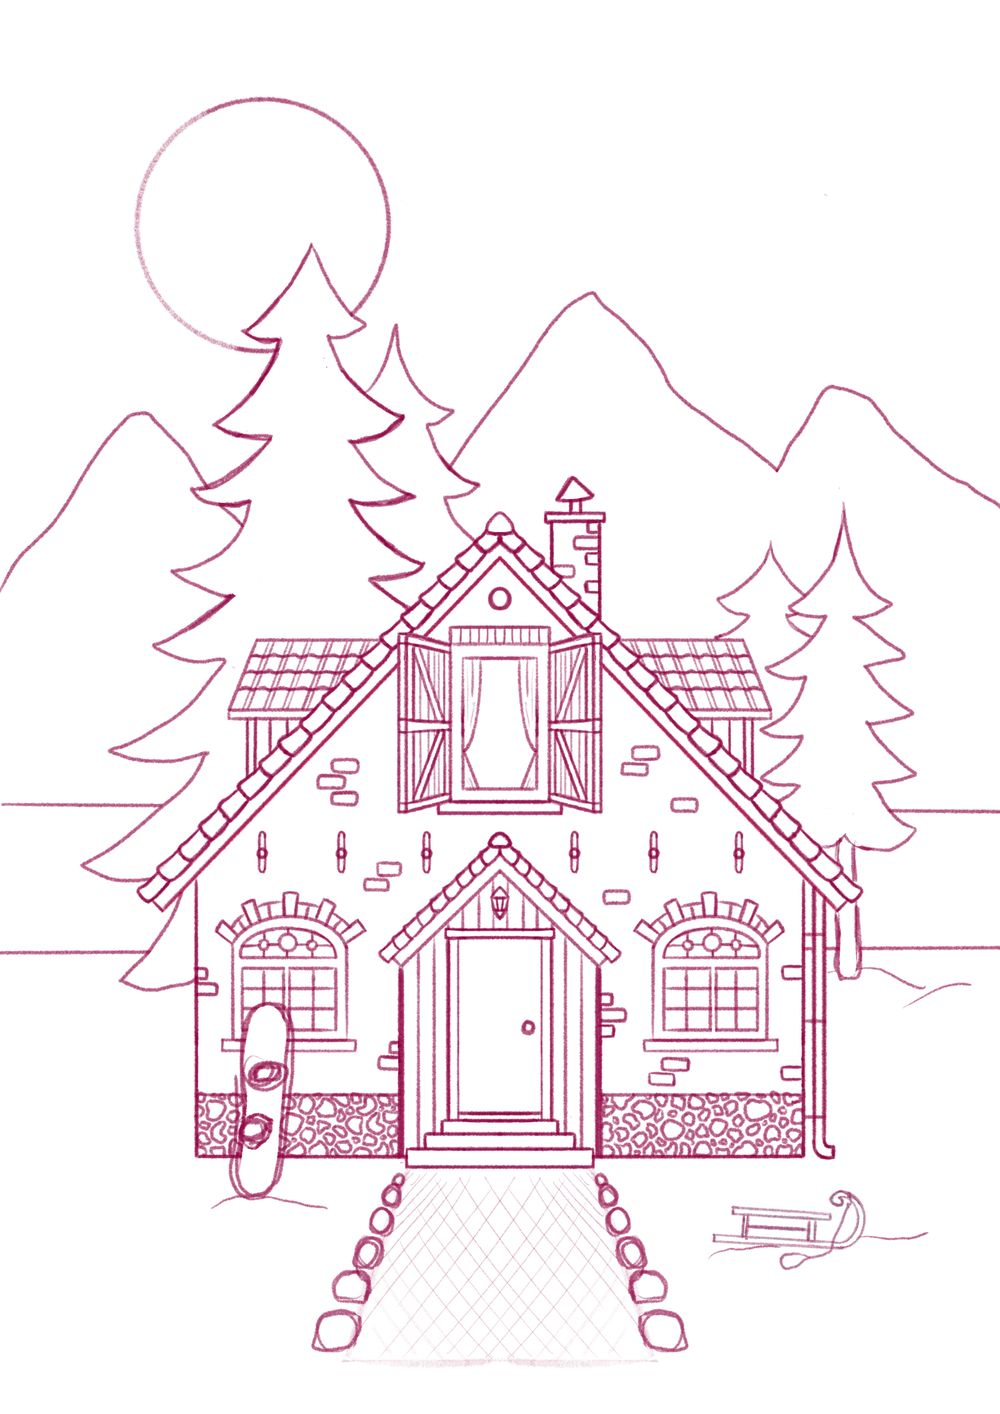 My Dream House - image 1 - student project